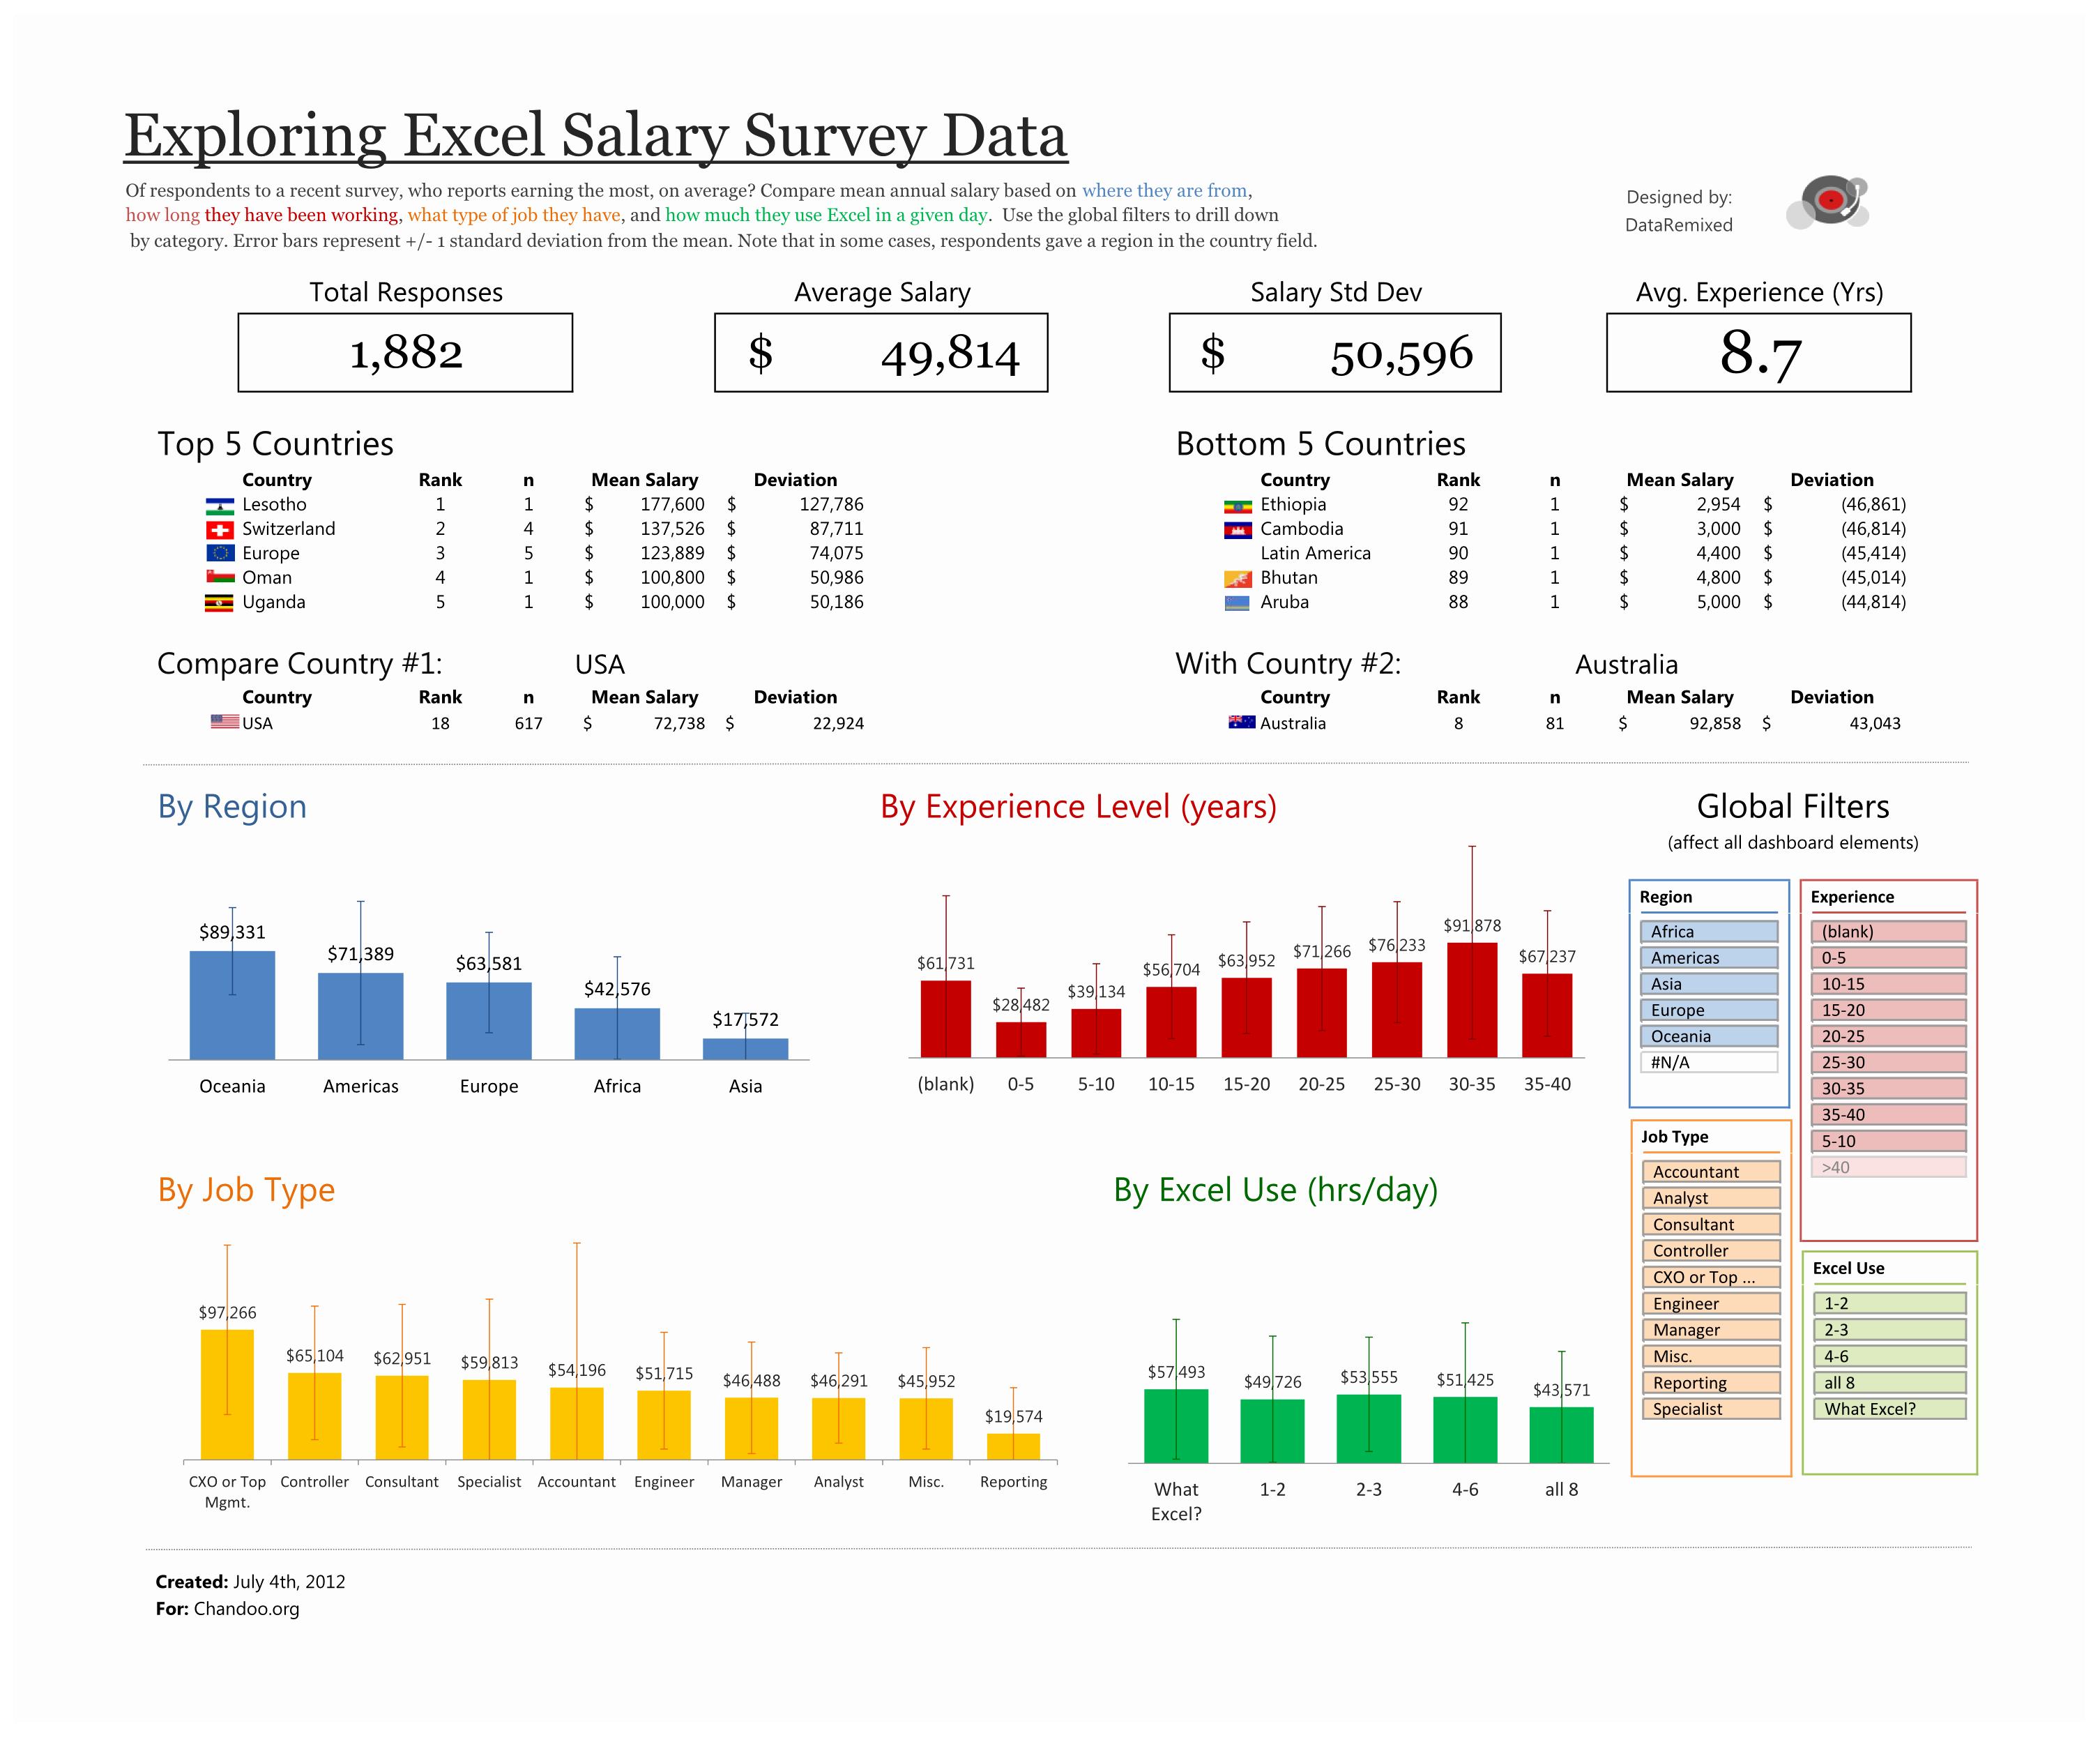 Survey Results Excel Template Best Of Exploring Survey Data with Excel – Dataremixed